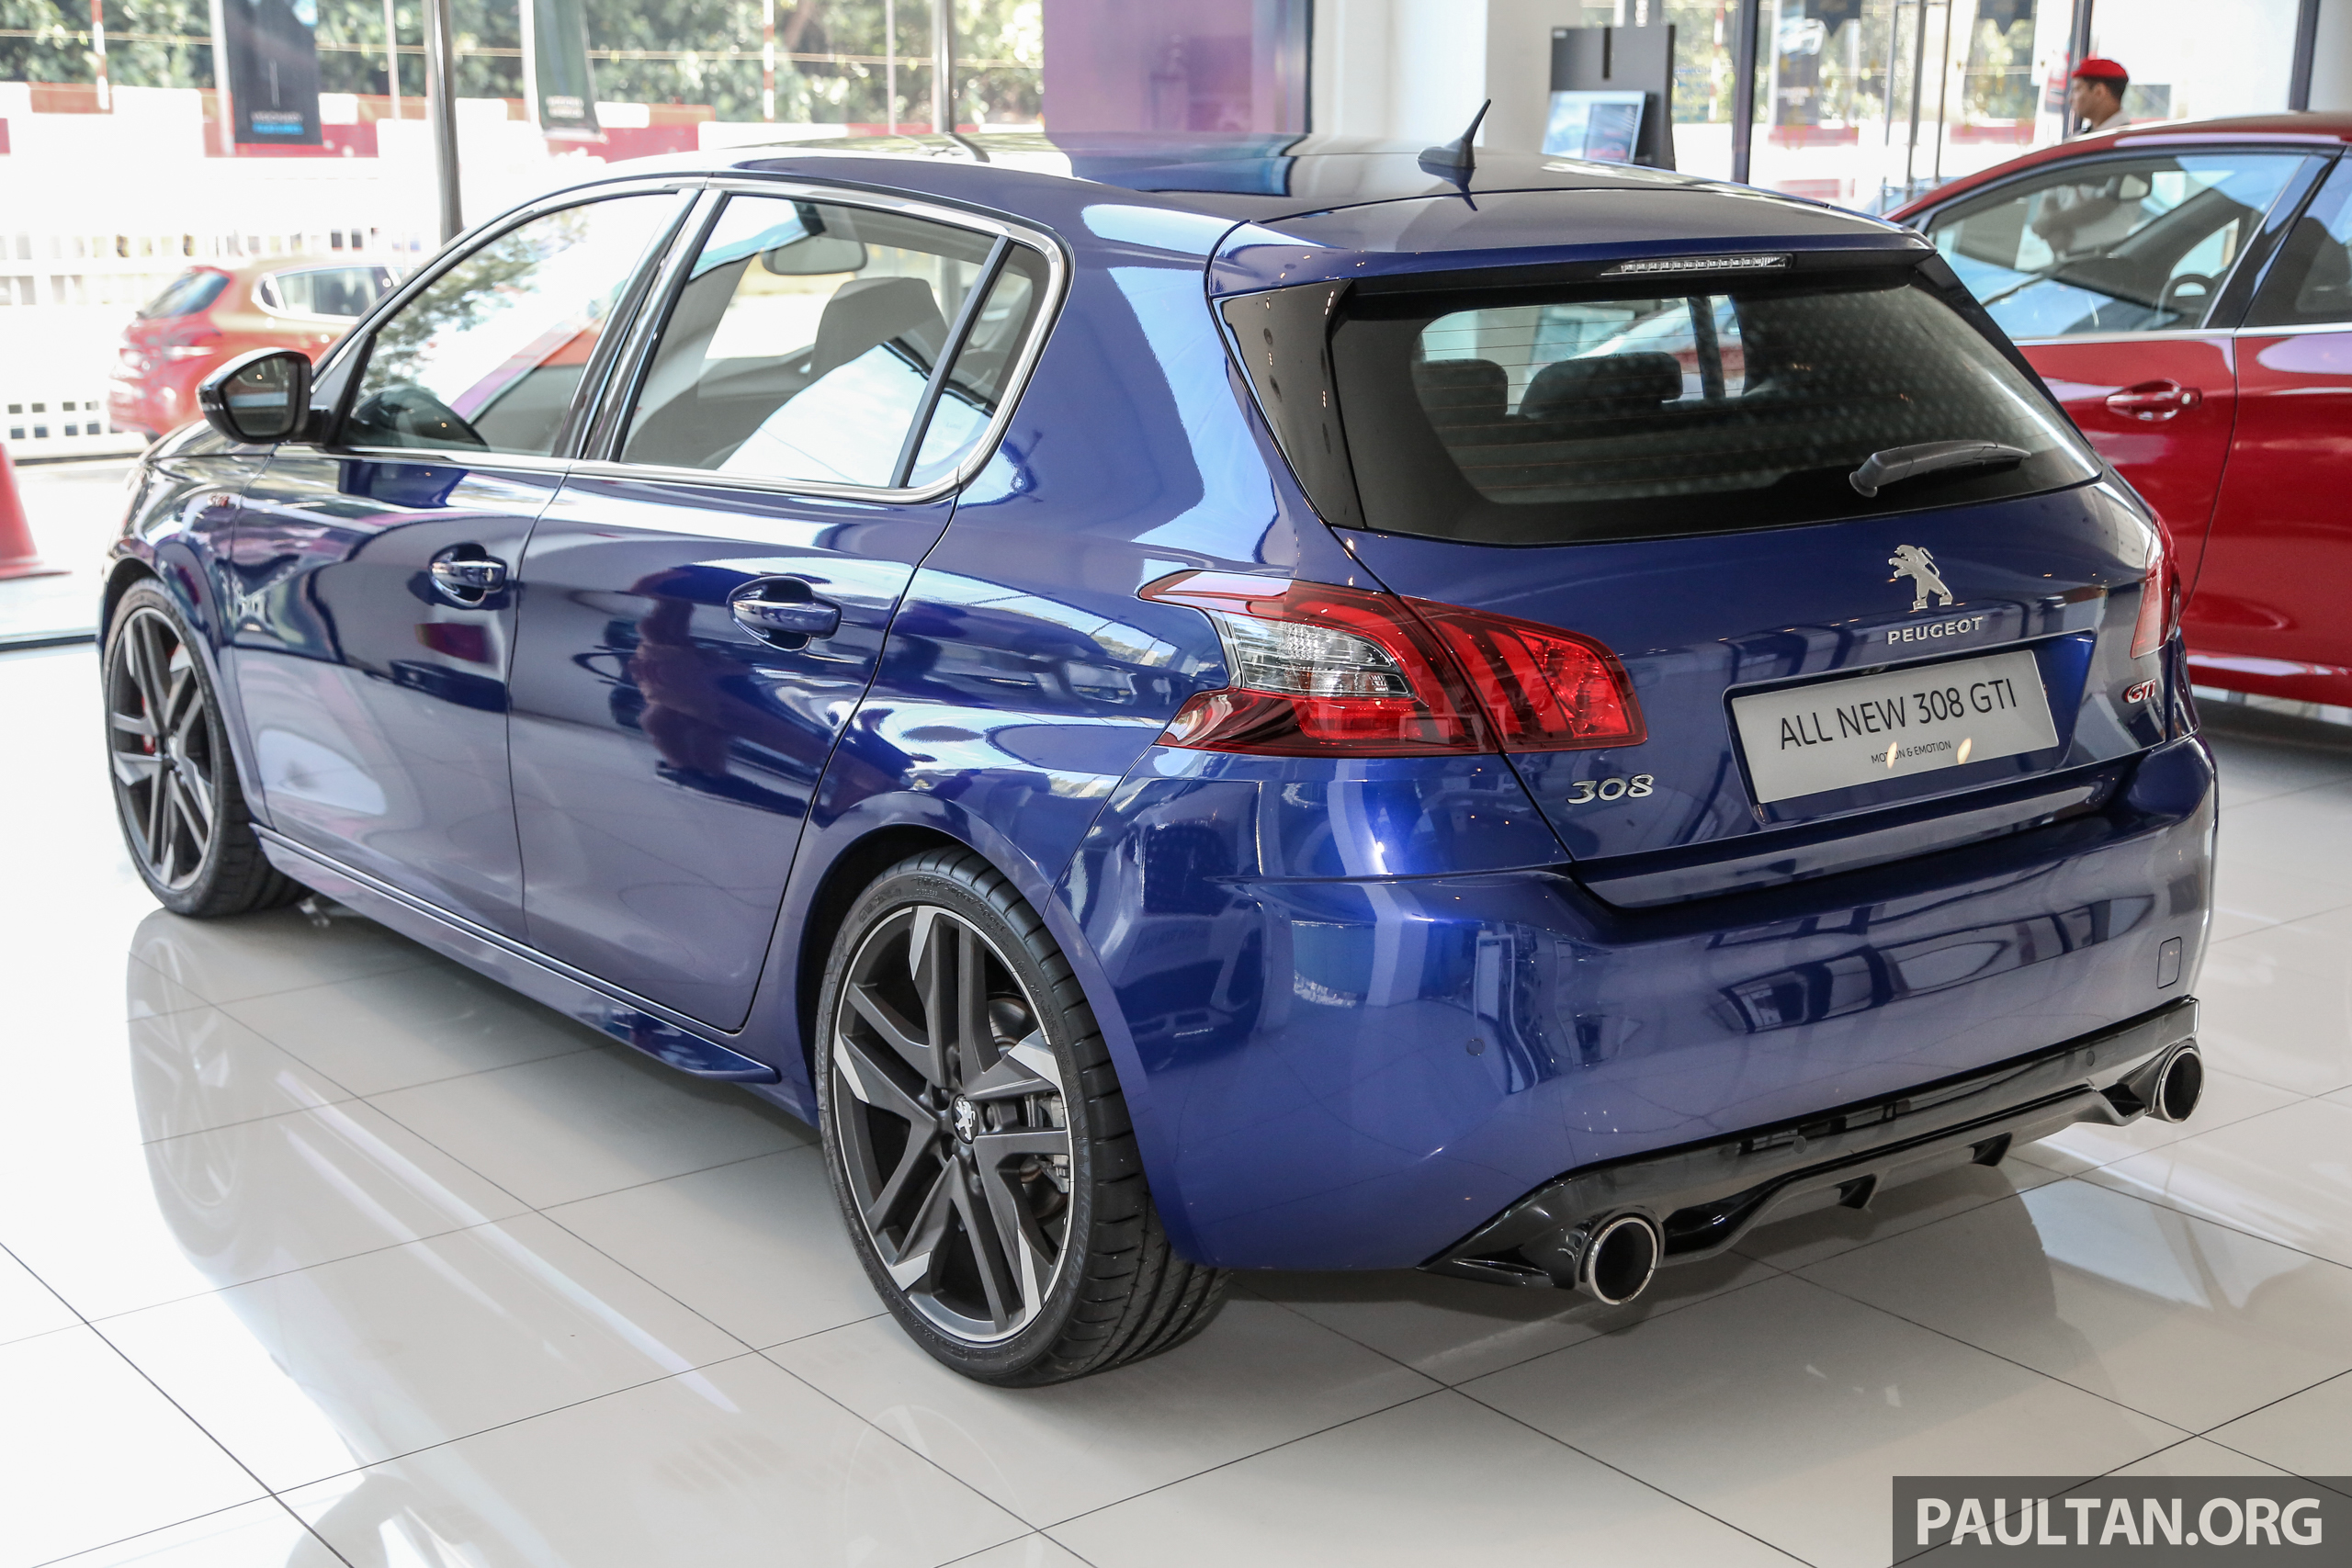 Peugeot 308 Gti Coming To Malaysia 270 Hp 6mt Rm200k Est